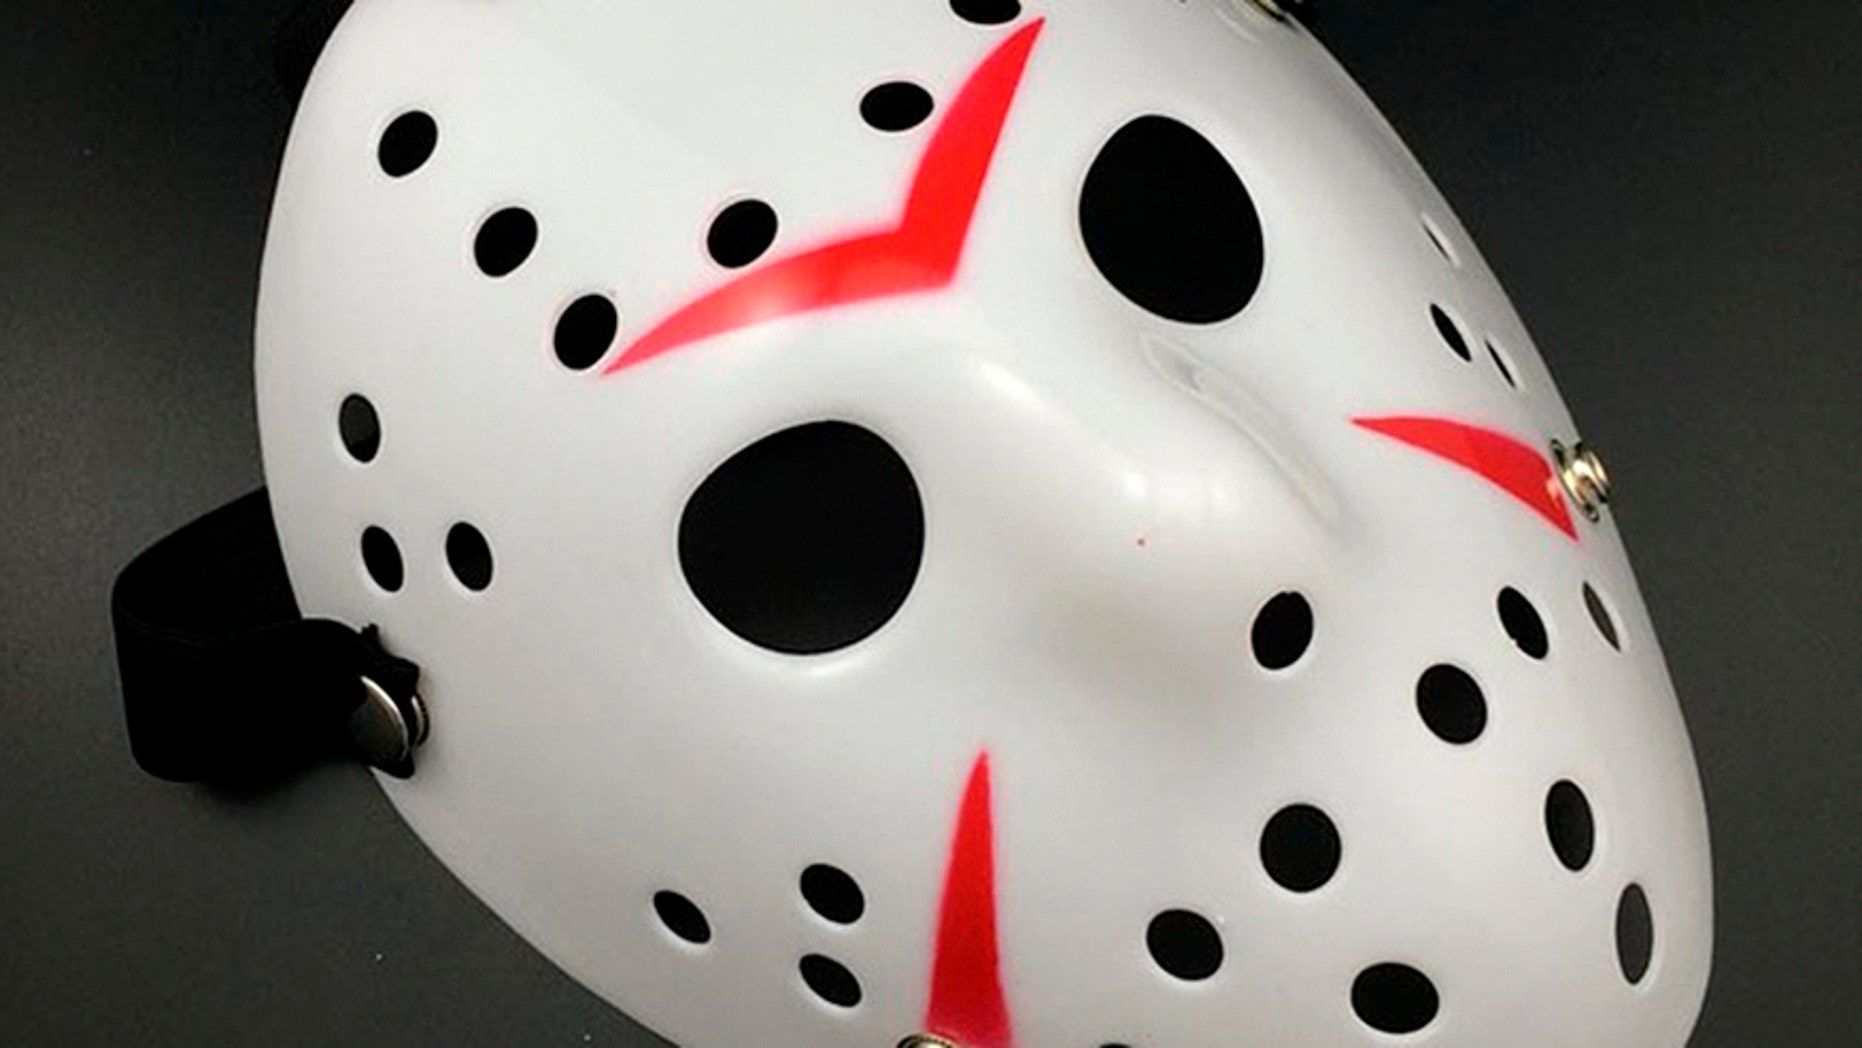 """A man wearing a Jason Voorhees mask -- famous from """"Friday the 13th"""" -- opened fire in Mississippi, police said."""